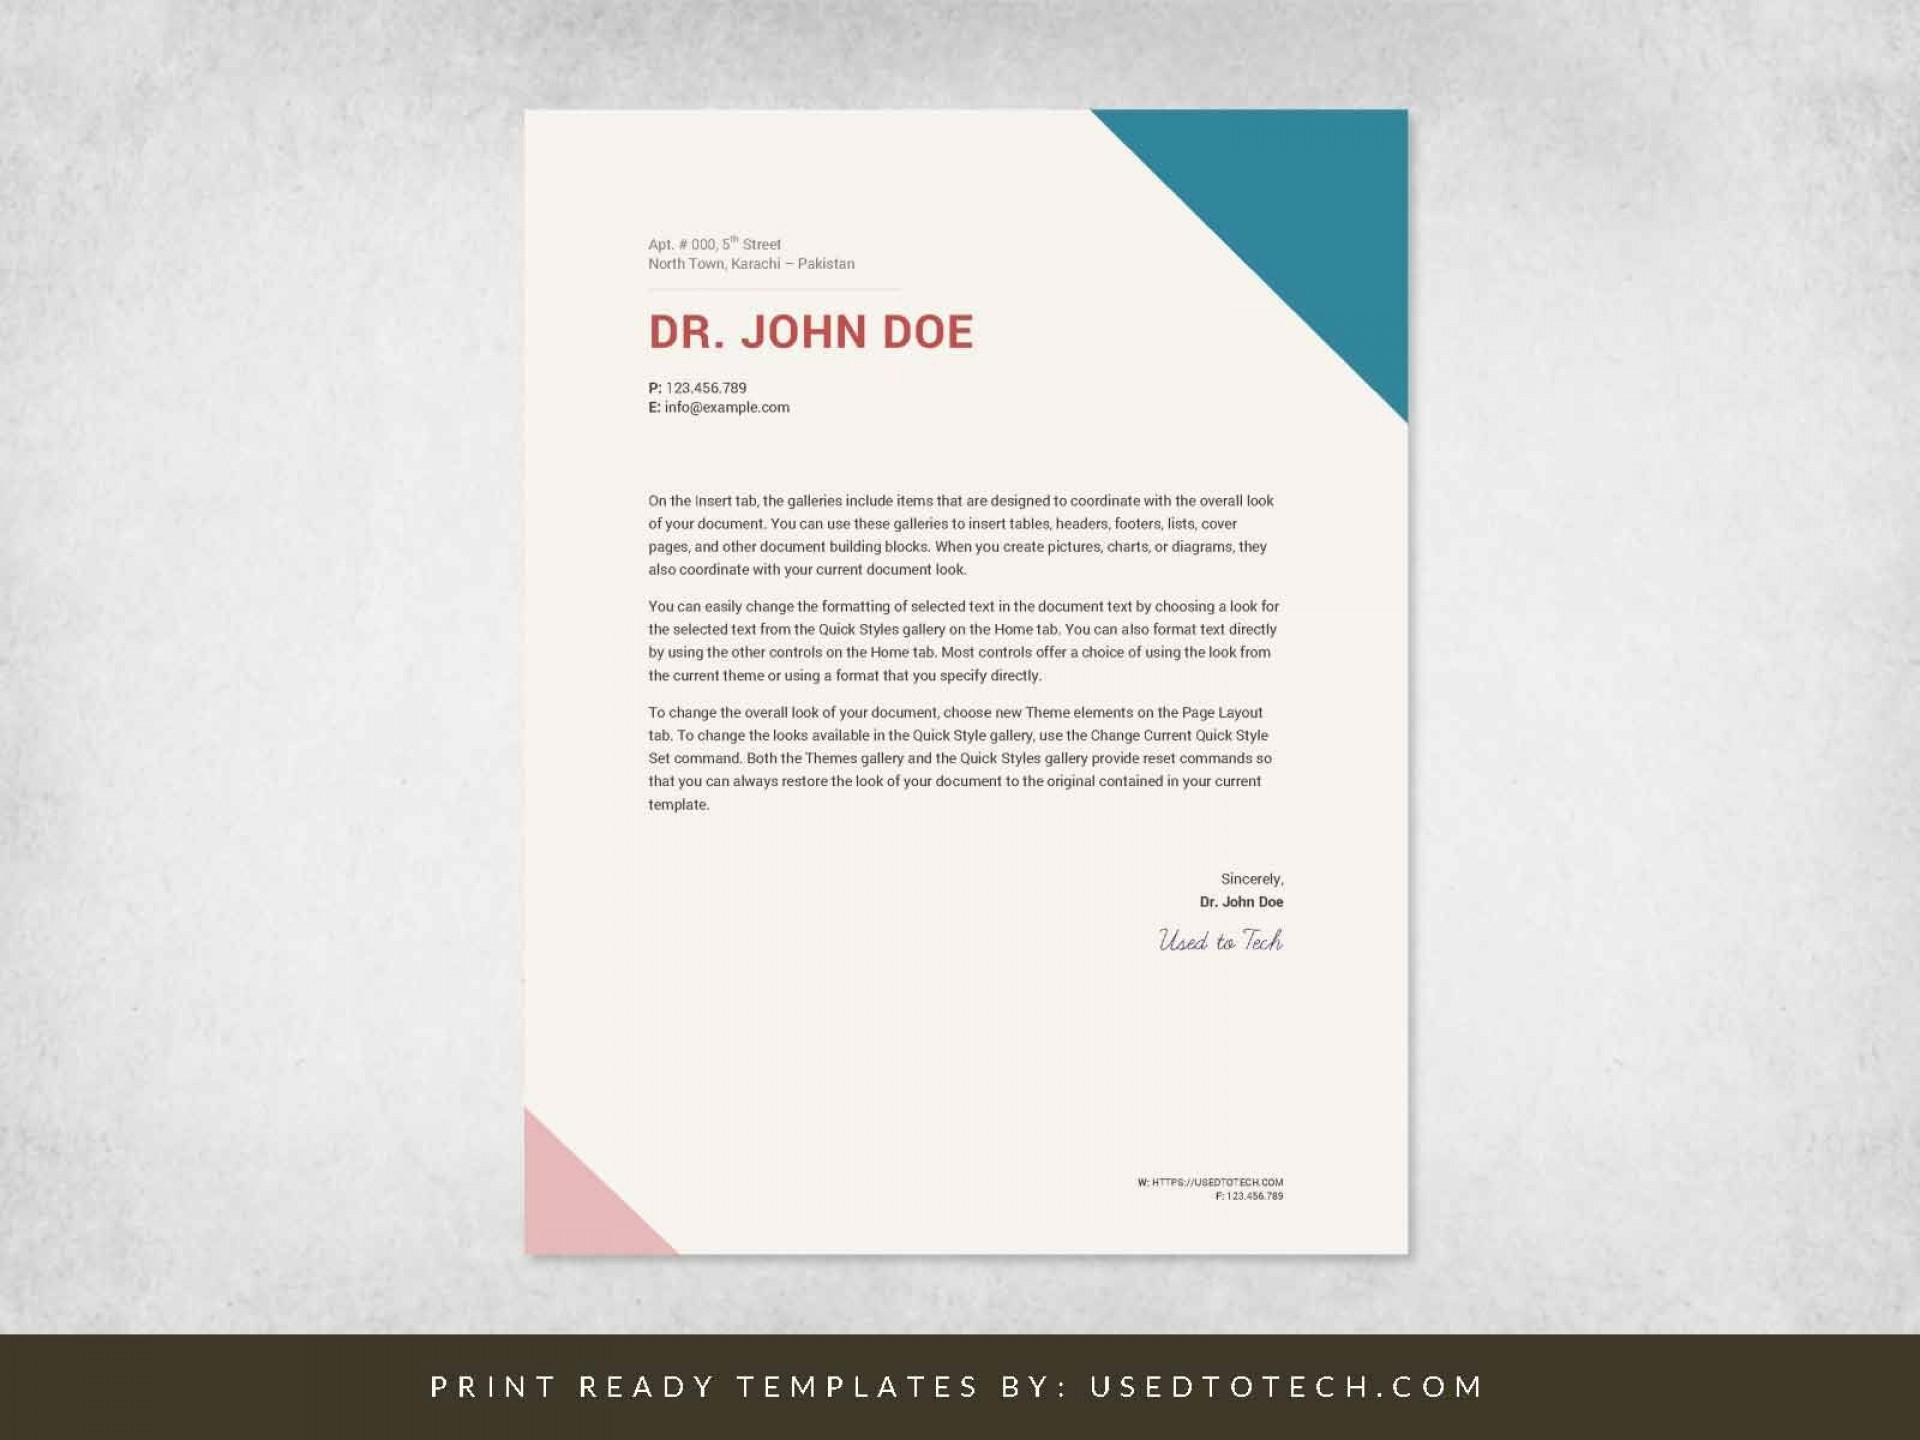 001 Frightening Simple Letterhead Format In Word Free Download Idea 1920